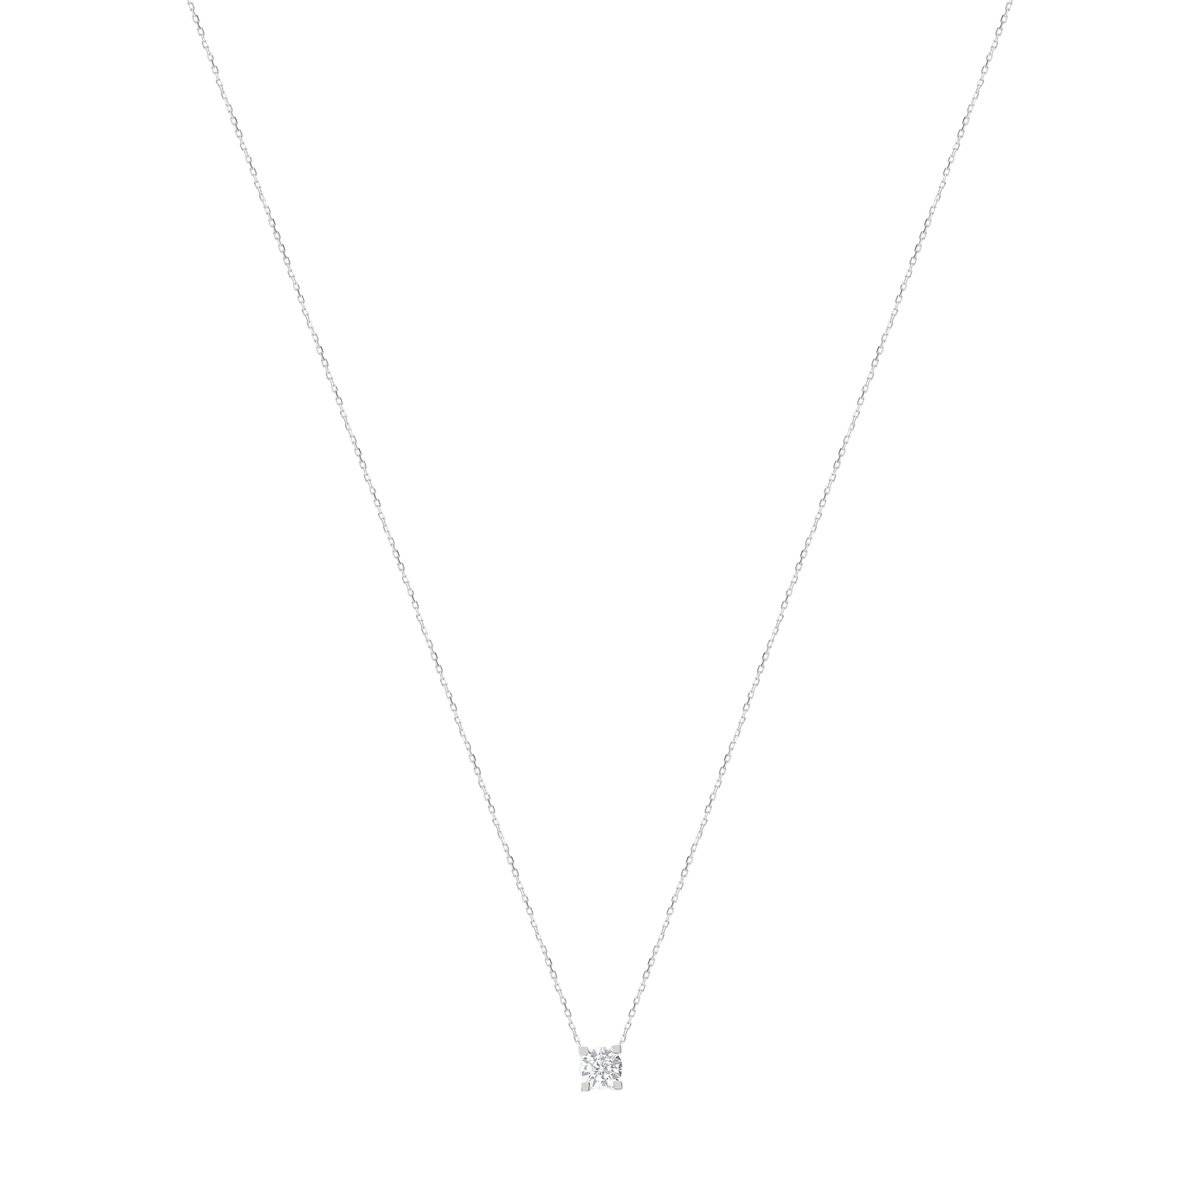 MATY Collier or 750 blanc diamant synthétique 0,50 carat 42 cm- MATY